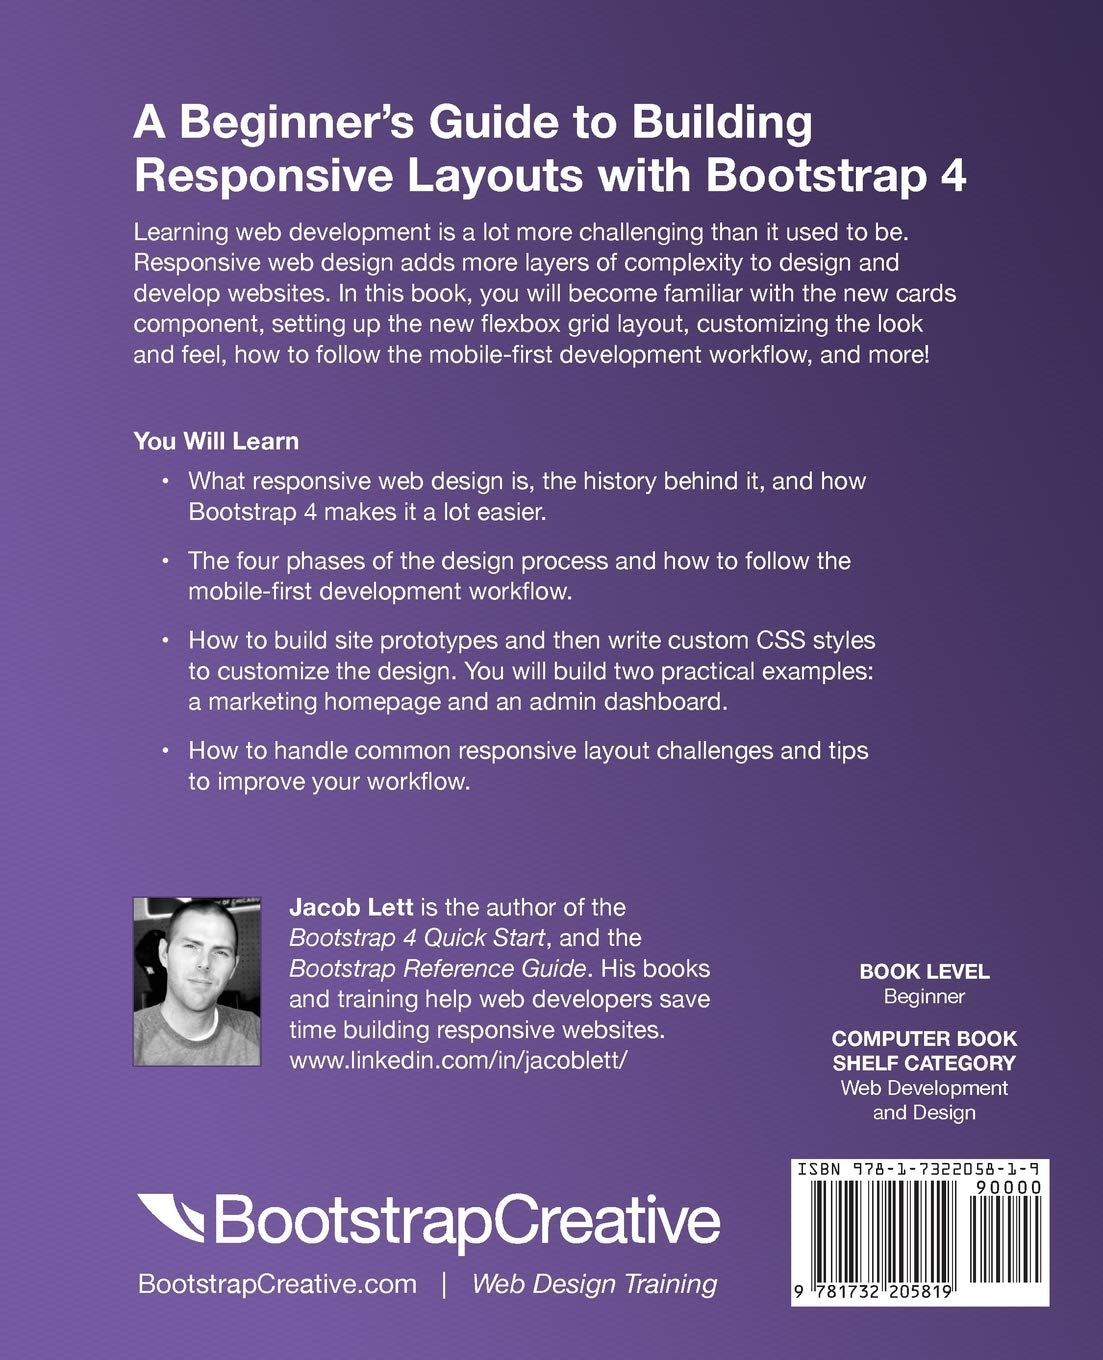 Bootstrap 4 Quick Start: A Beginners Guide to Building Responsive Layouts with Bootstrap 4: Amazon.es: Jacob Lett: Libros en idiomas extranjeros